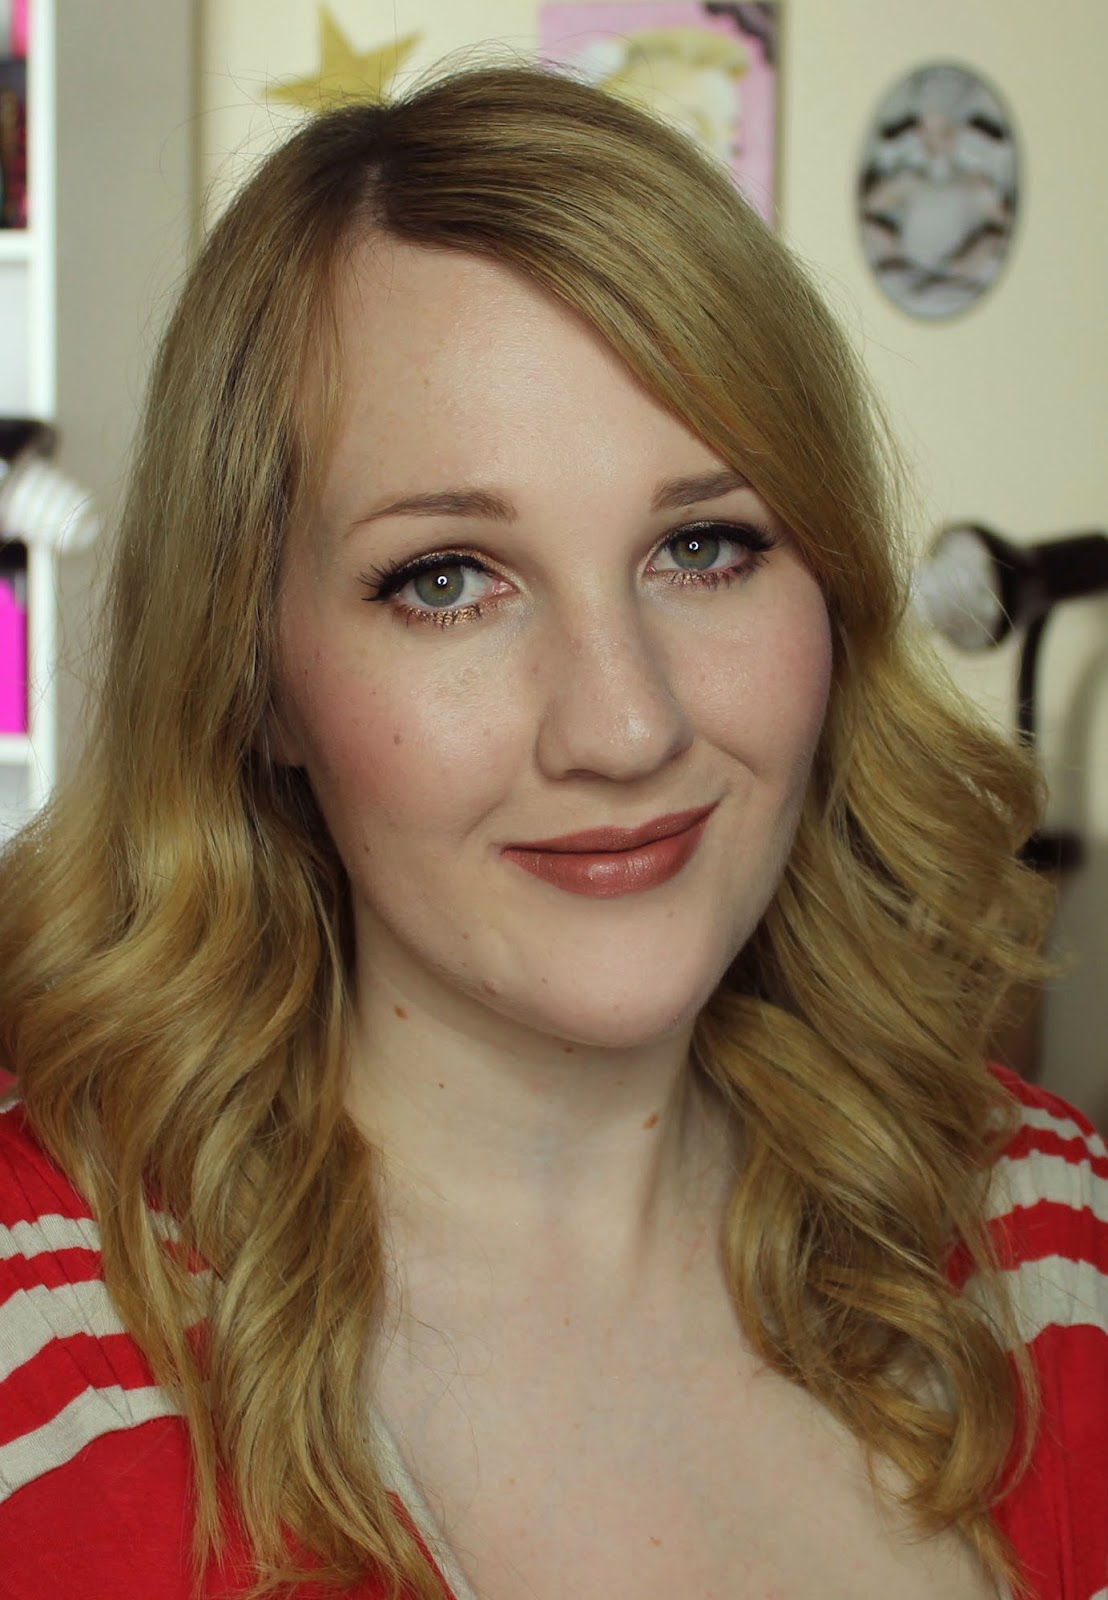 Australis Velourlips - Noo-d Fighters Swatches & Review